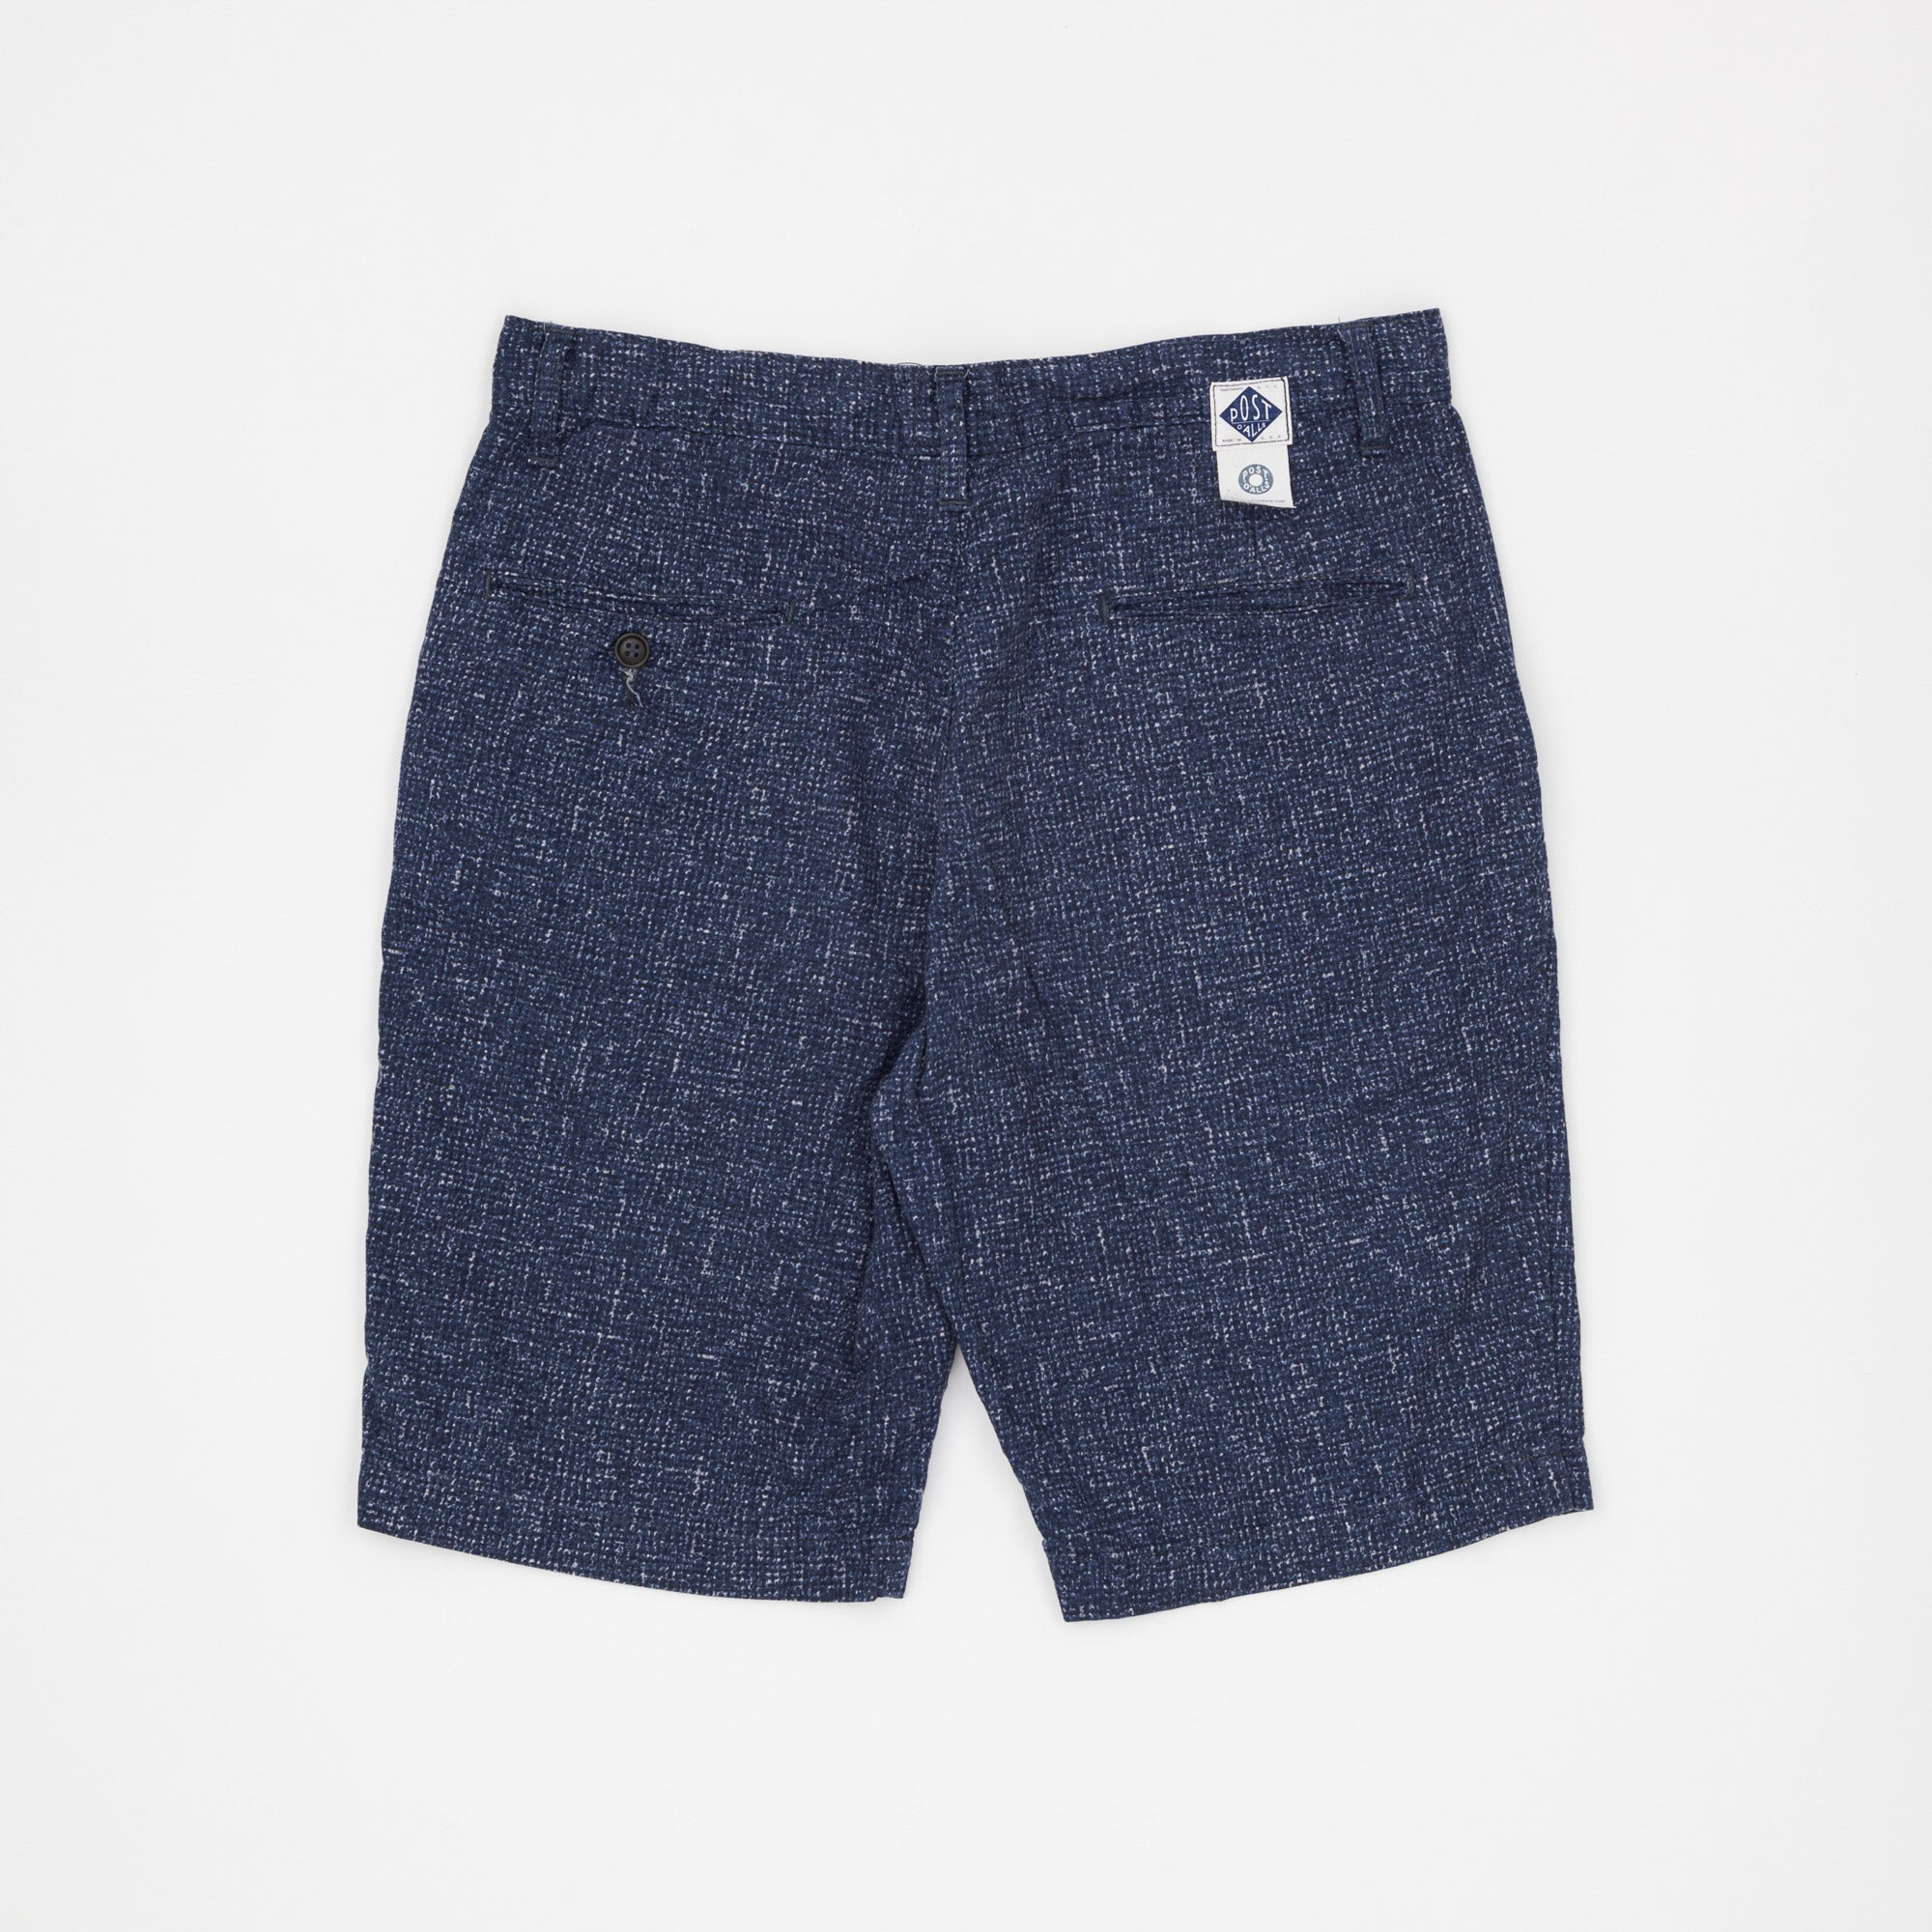 Pattern Menpolini Shorts